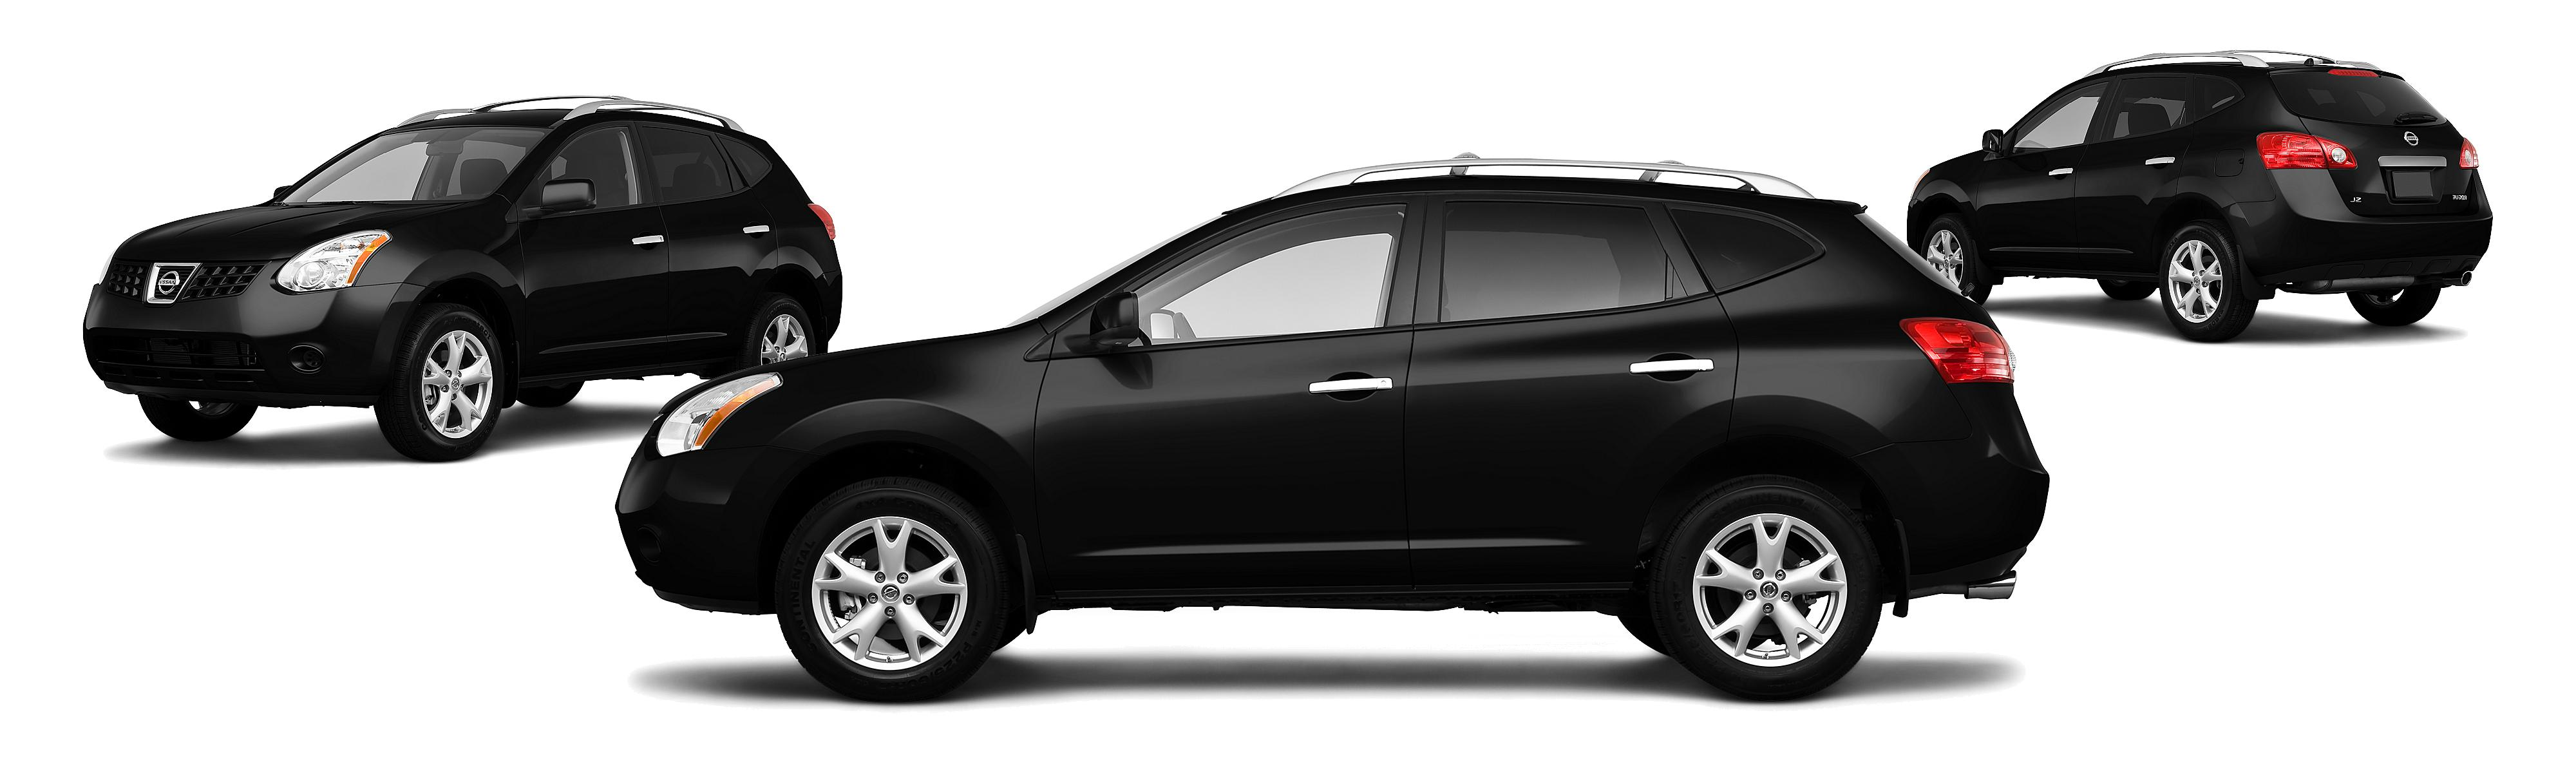 2010 nissan rogue awd s 4dr crossover - research - groovecar